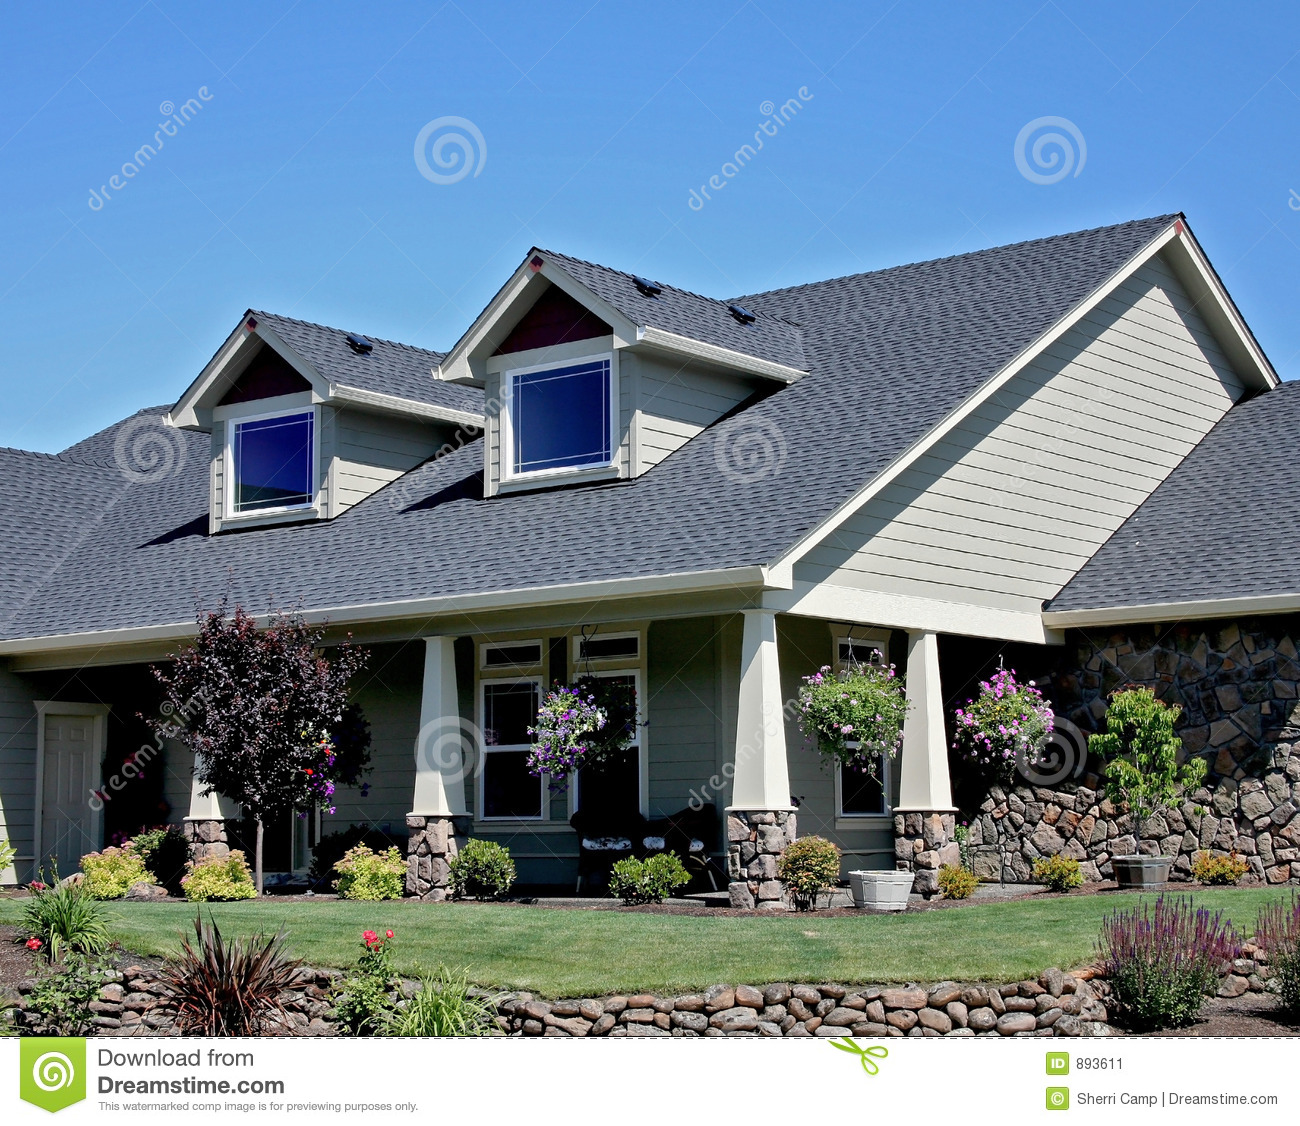 American craftsman style house stock image image of for American style homes